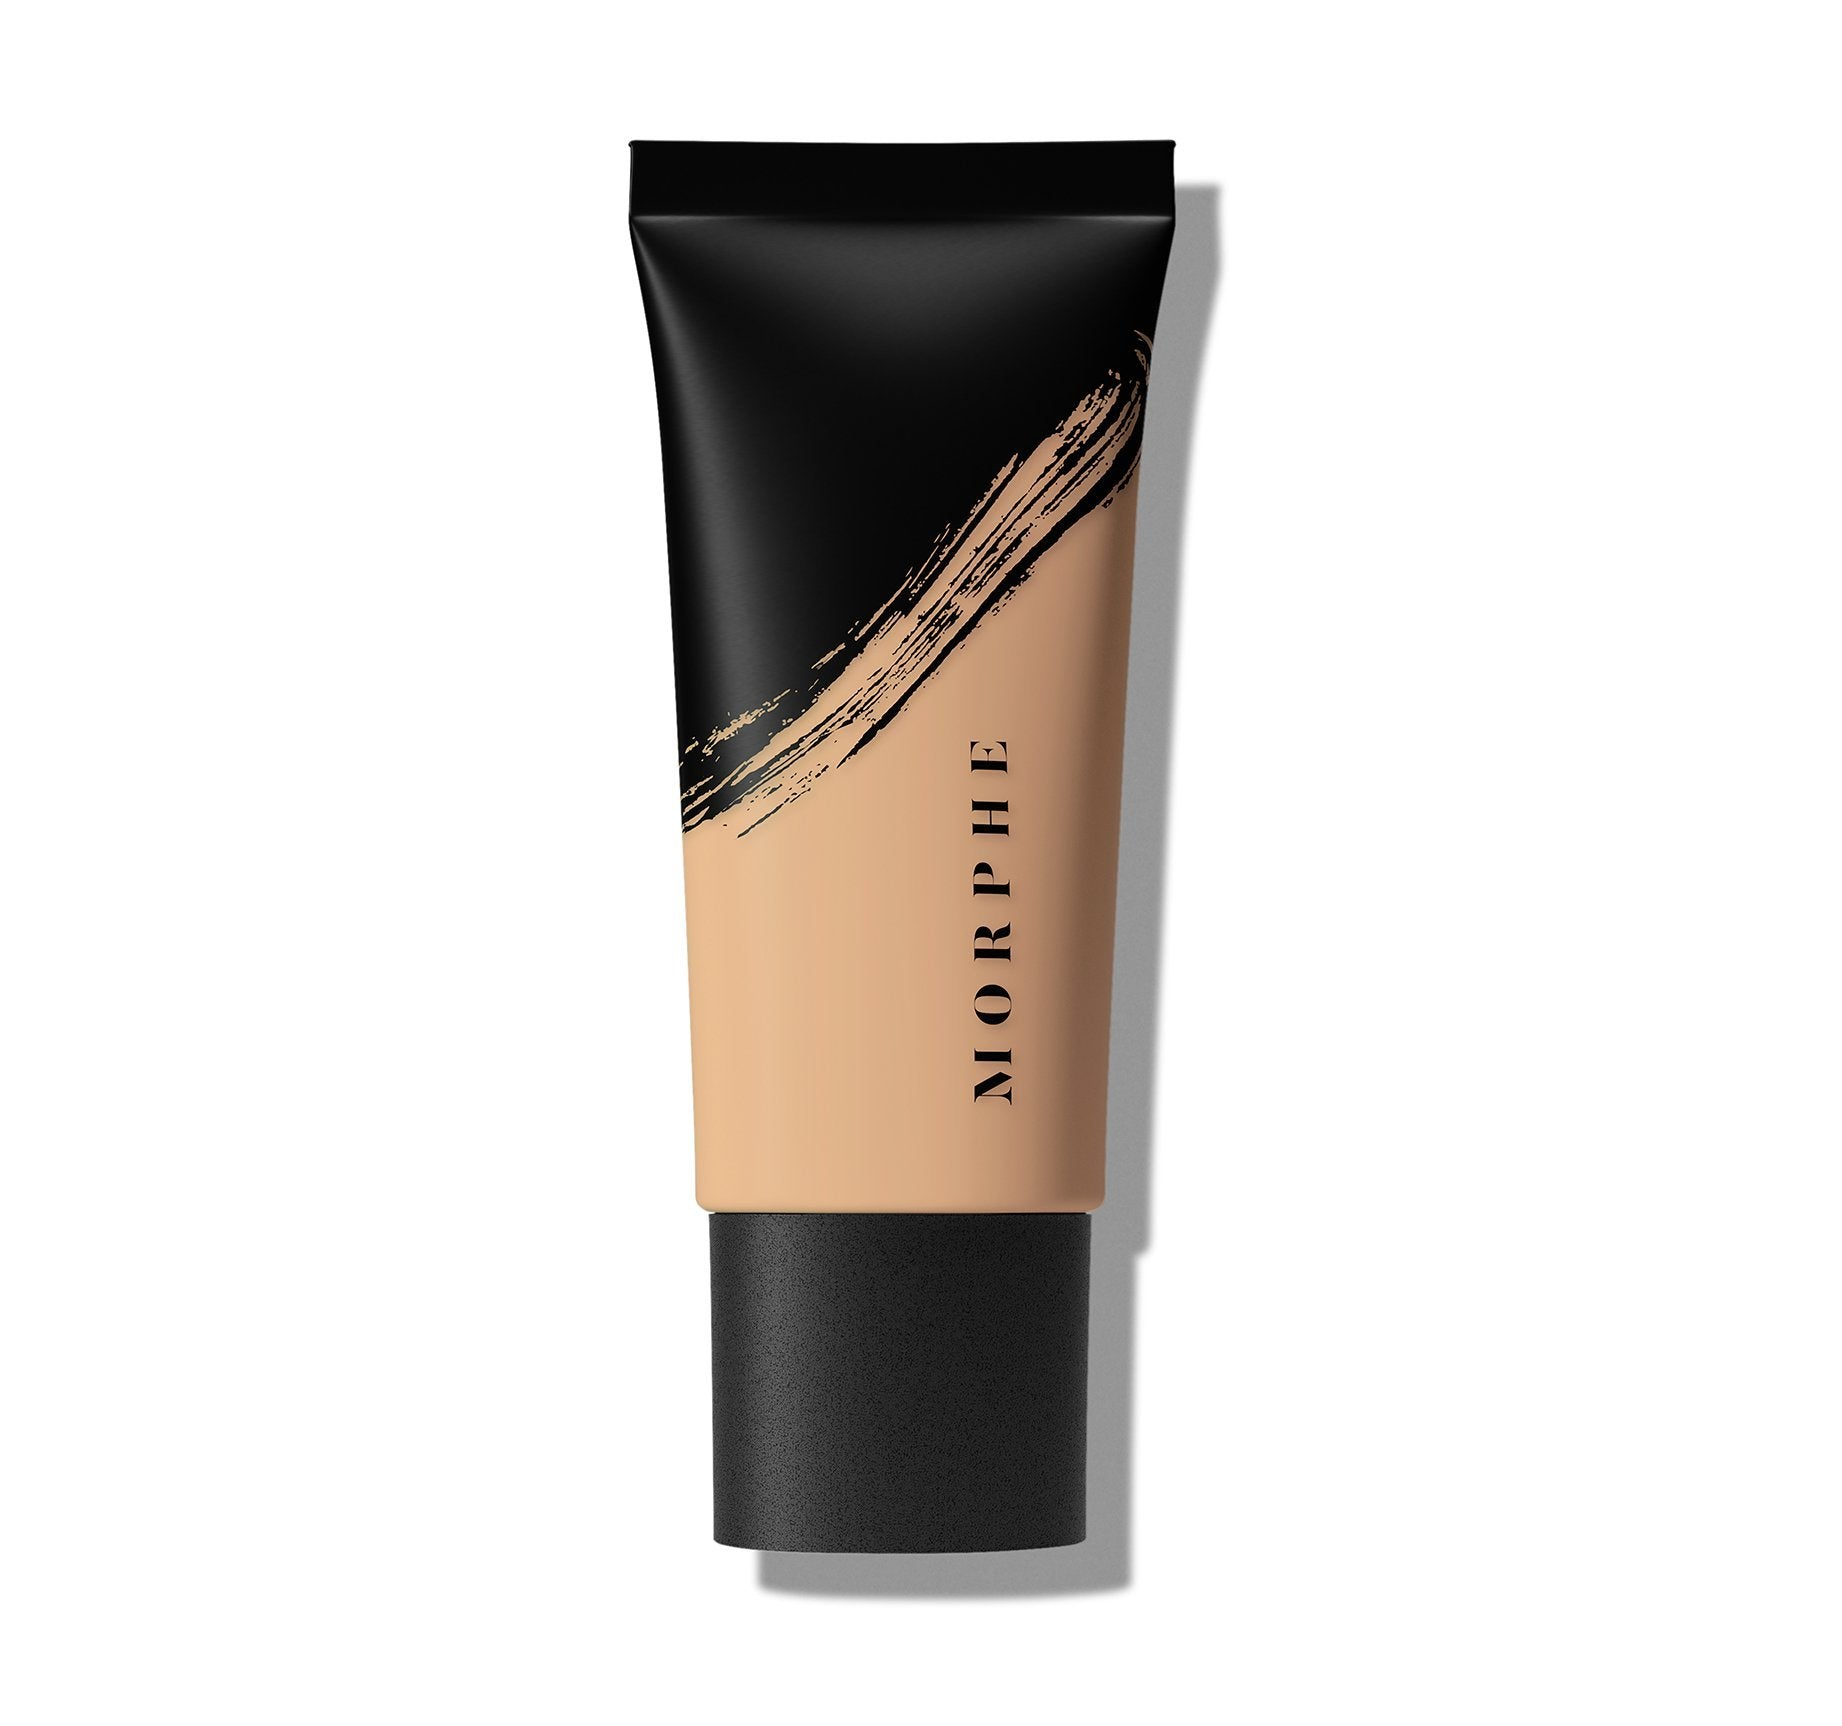 FLUIDITY FULL-COVERAGE FOUNDATION - F2.20, view larger image